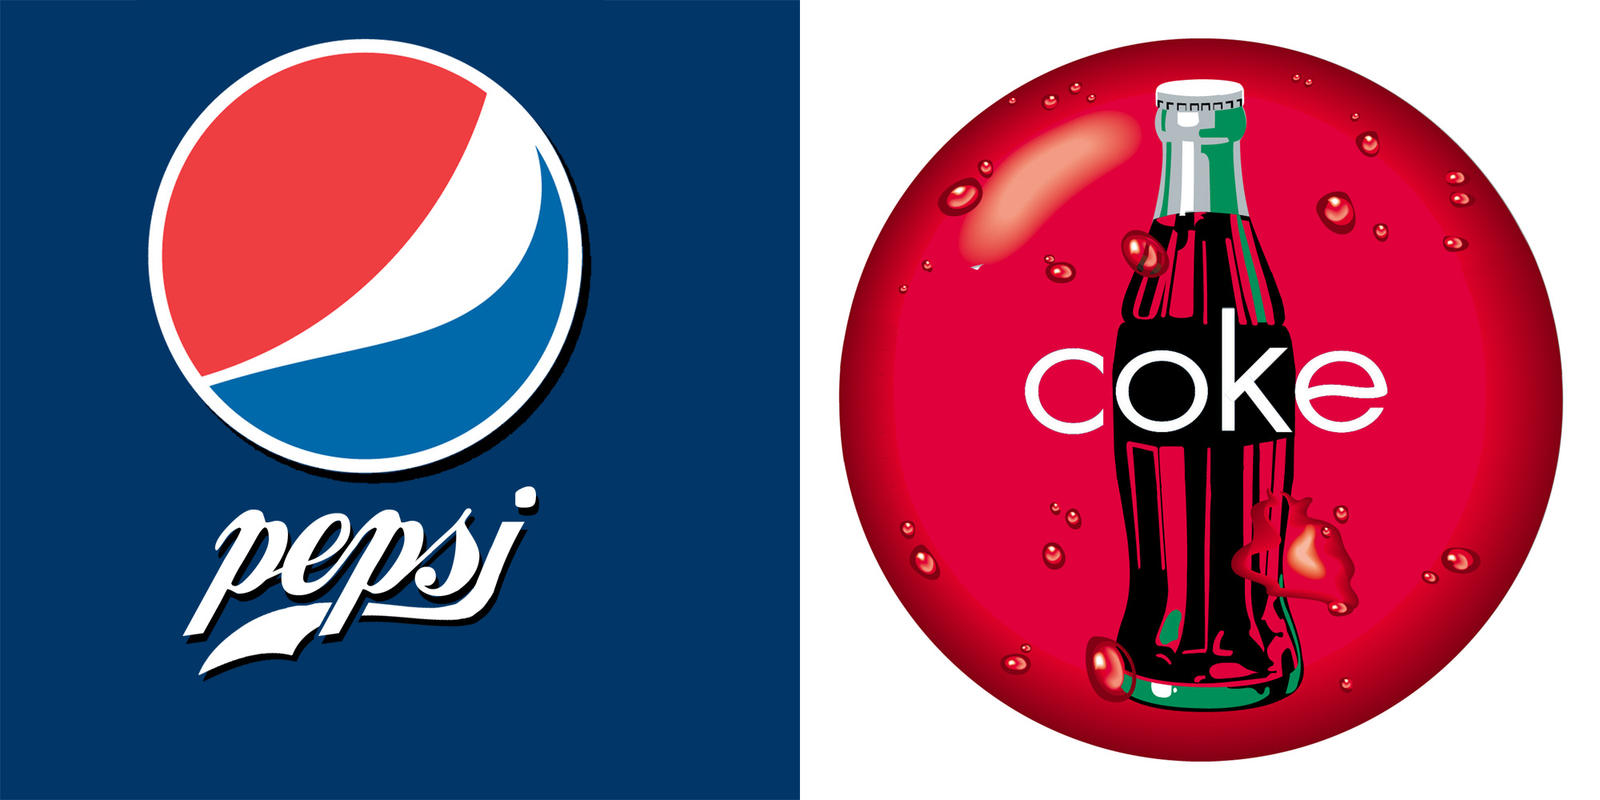 coca cola vs pepsi The coke (coca cola) vs pepsi wars have been raging for over a century now, turning soda into a multi billion dollar a year industry but just who are the titans of this industry, how did they get to where they are, and which of them reigns supreme we thought it would be fun to take a closer look at the two.